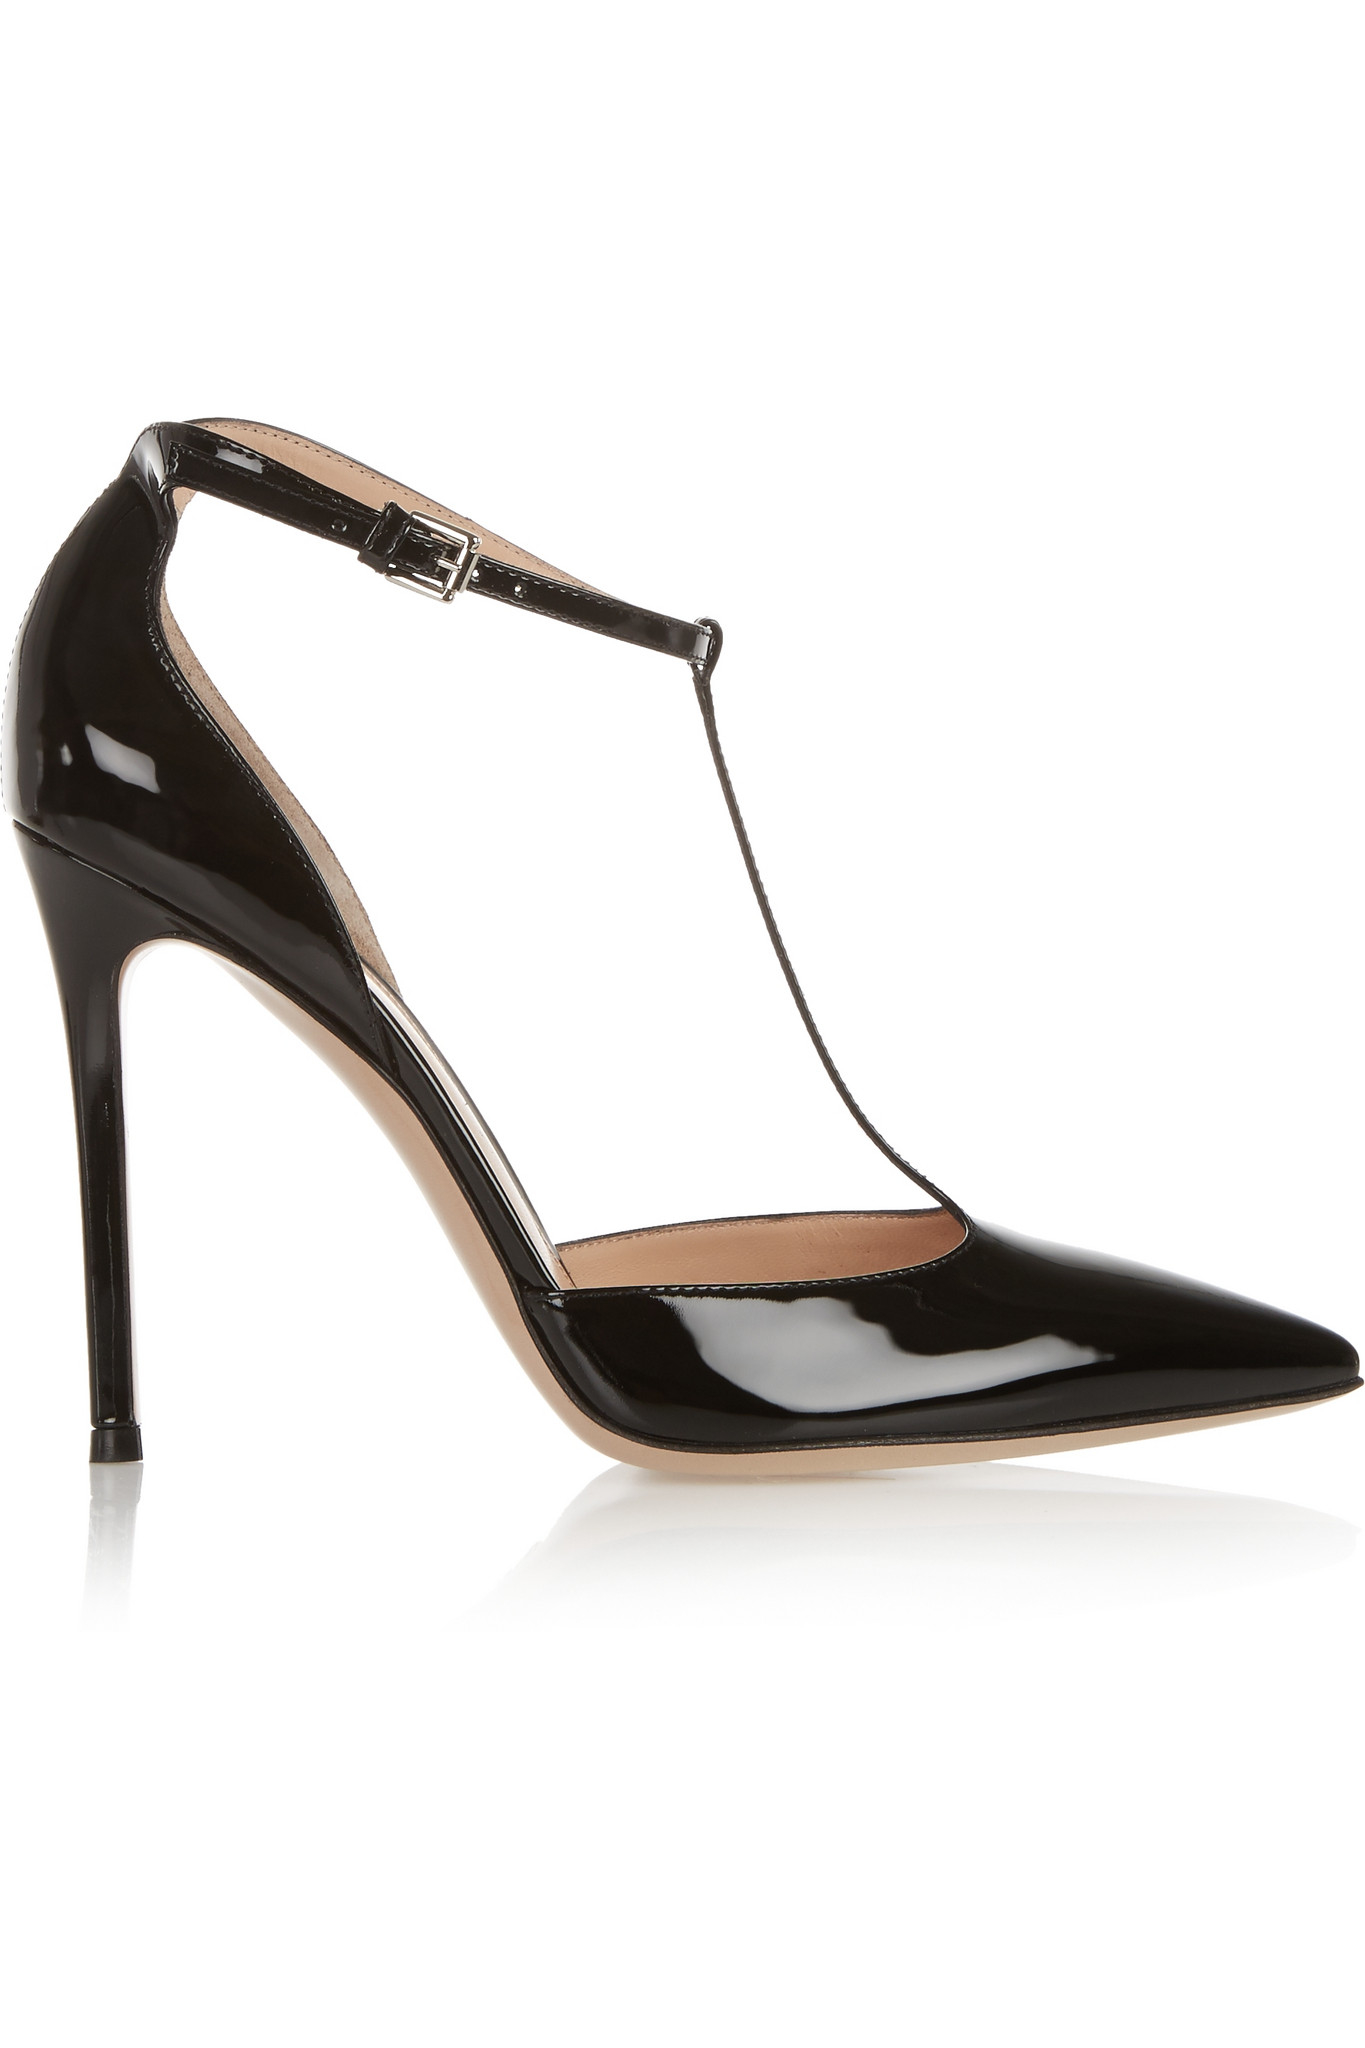 ed37ba360baf9 Gianvito Rossi Patent-leather T-bar Pumps in Black - Lyst